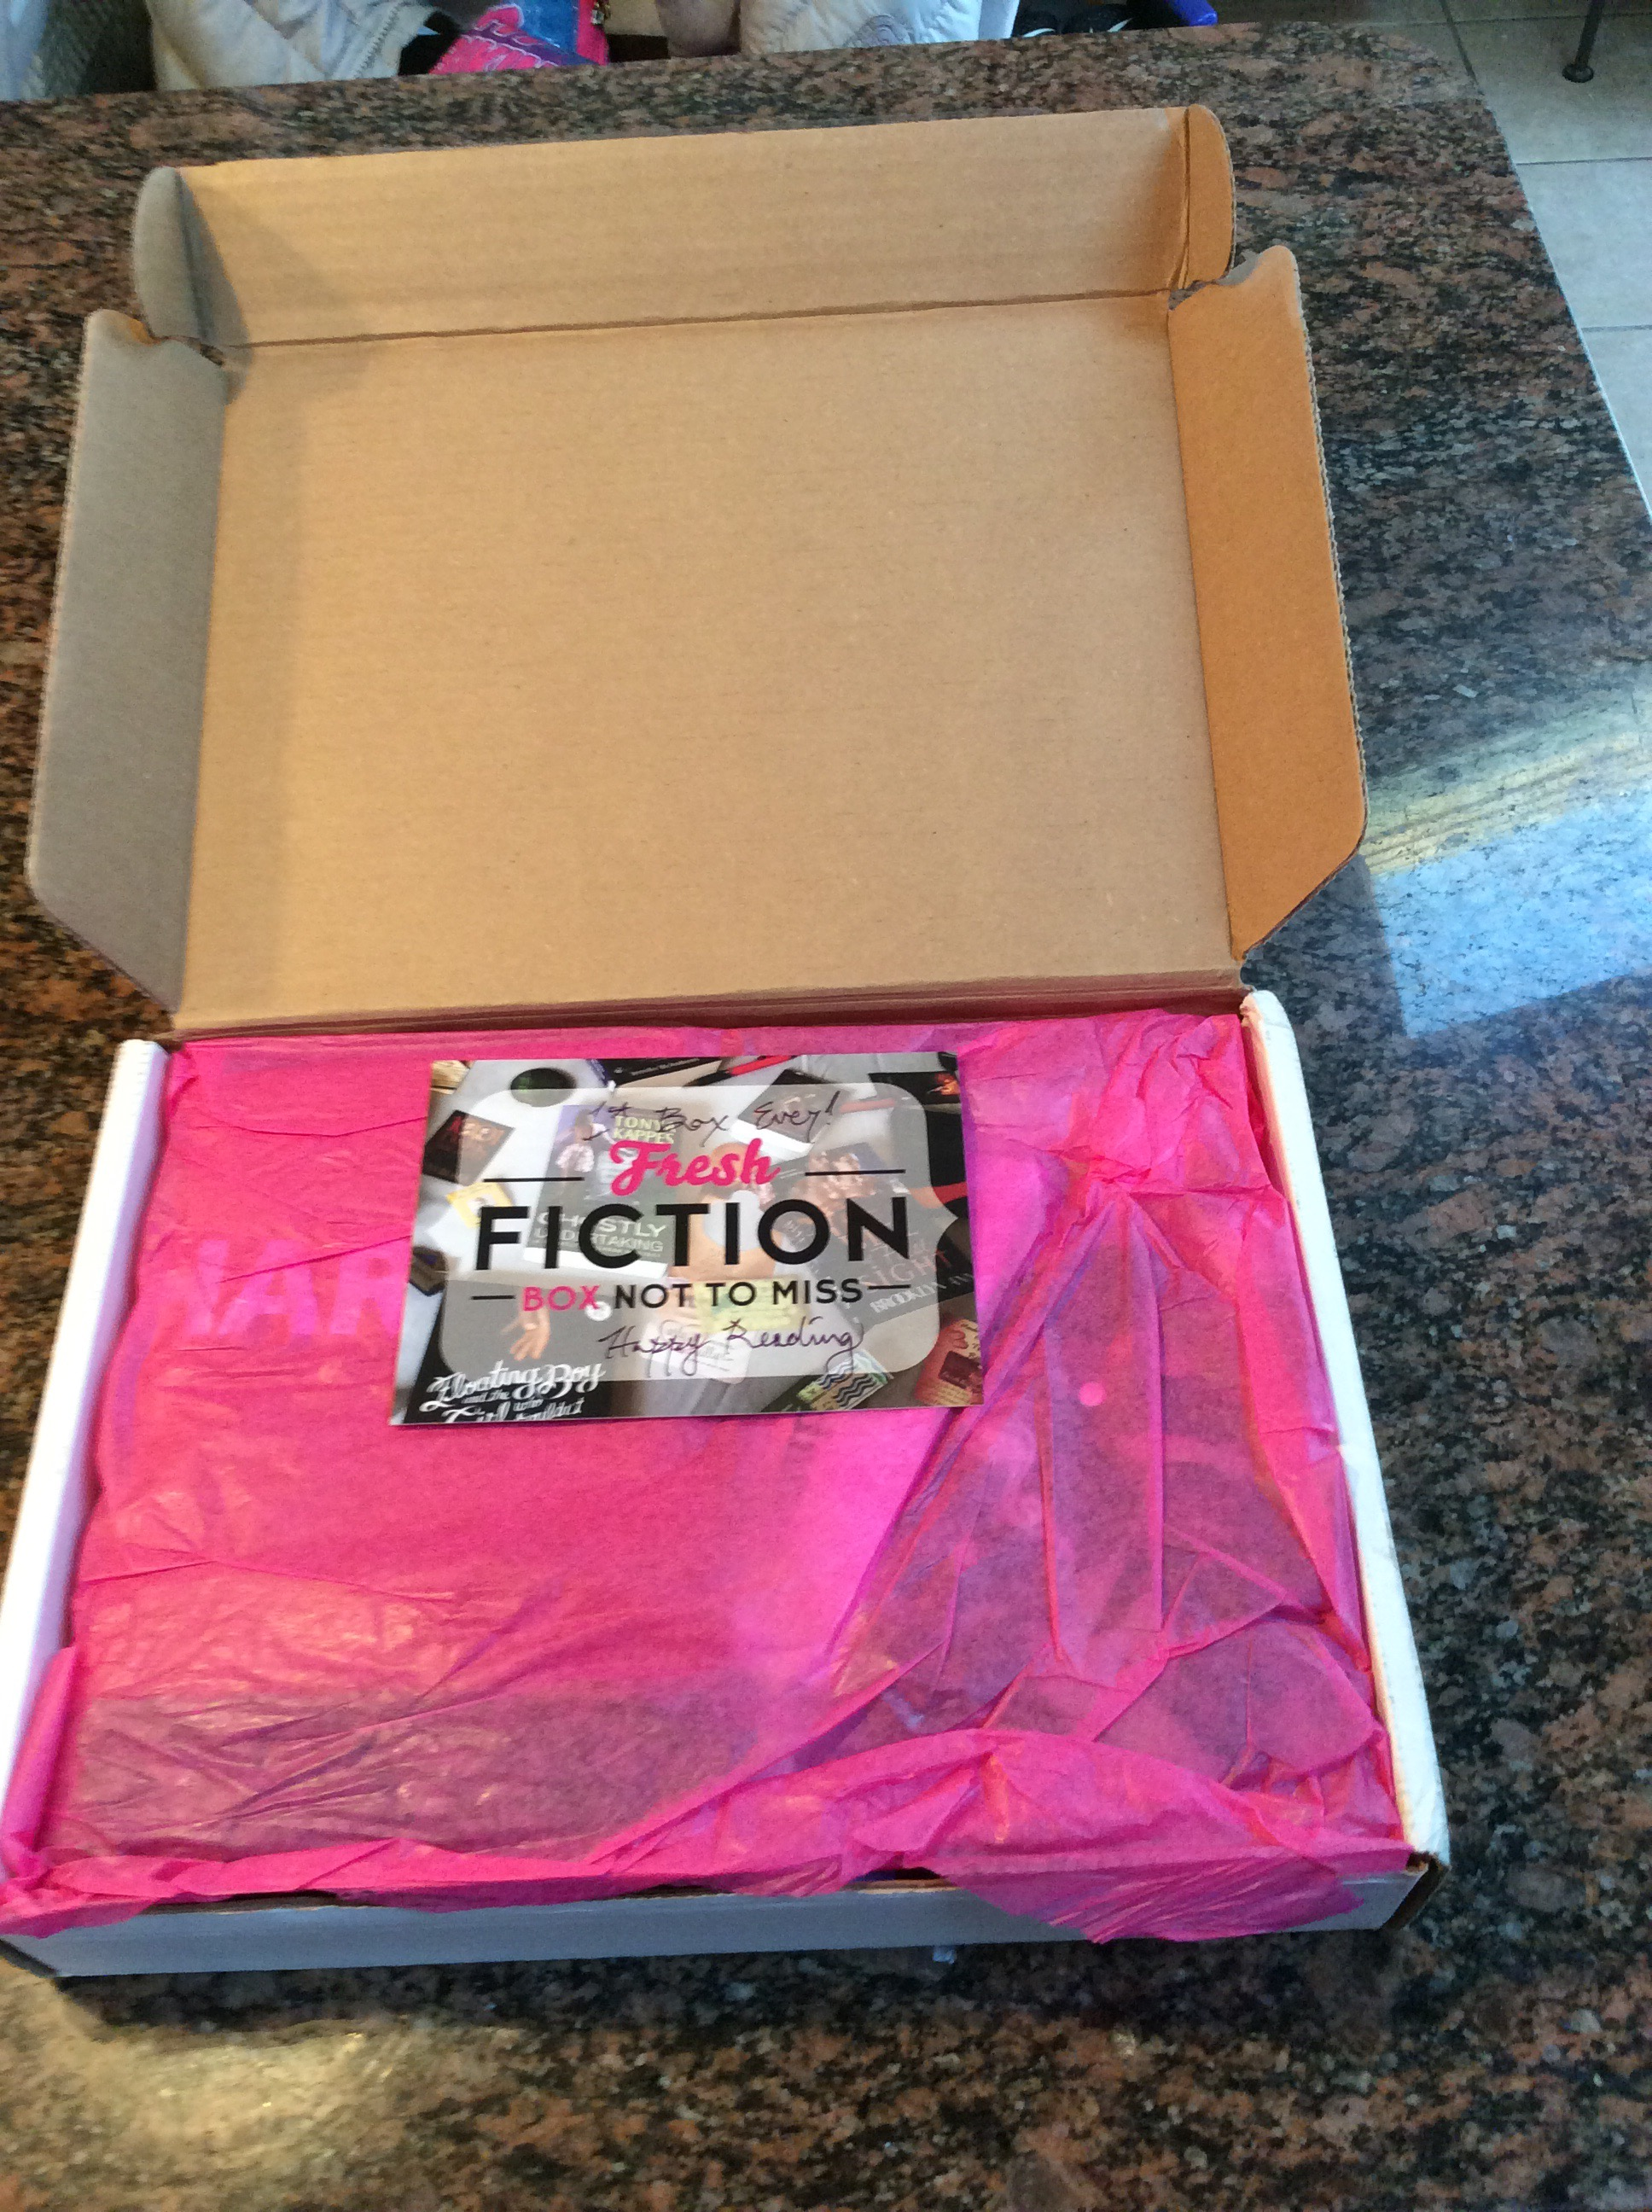 June 2015 – Fresh Fiction Box Not To Miss Review